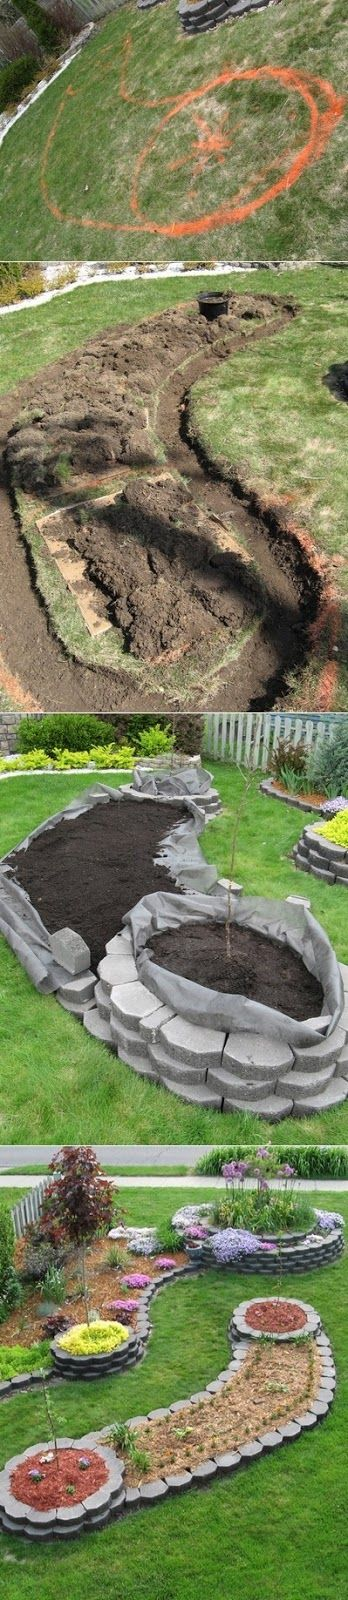 island bed garden design awesome for my front yard i could plant my fruit trees in the. Black Bedroom Furniture Sets. Home Design Ideas